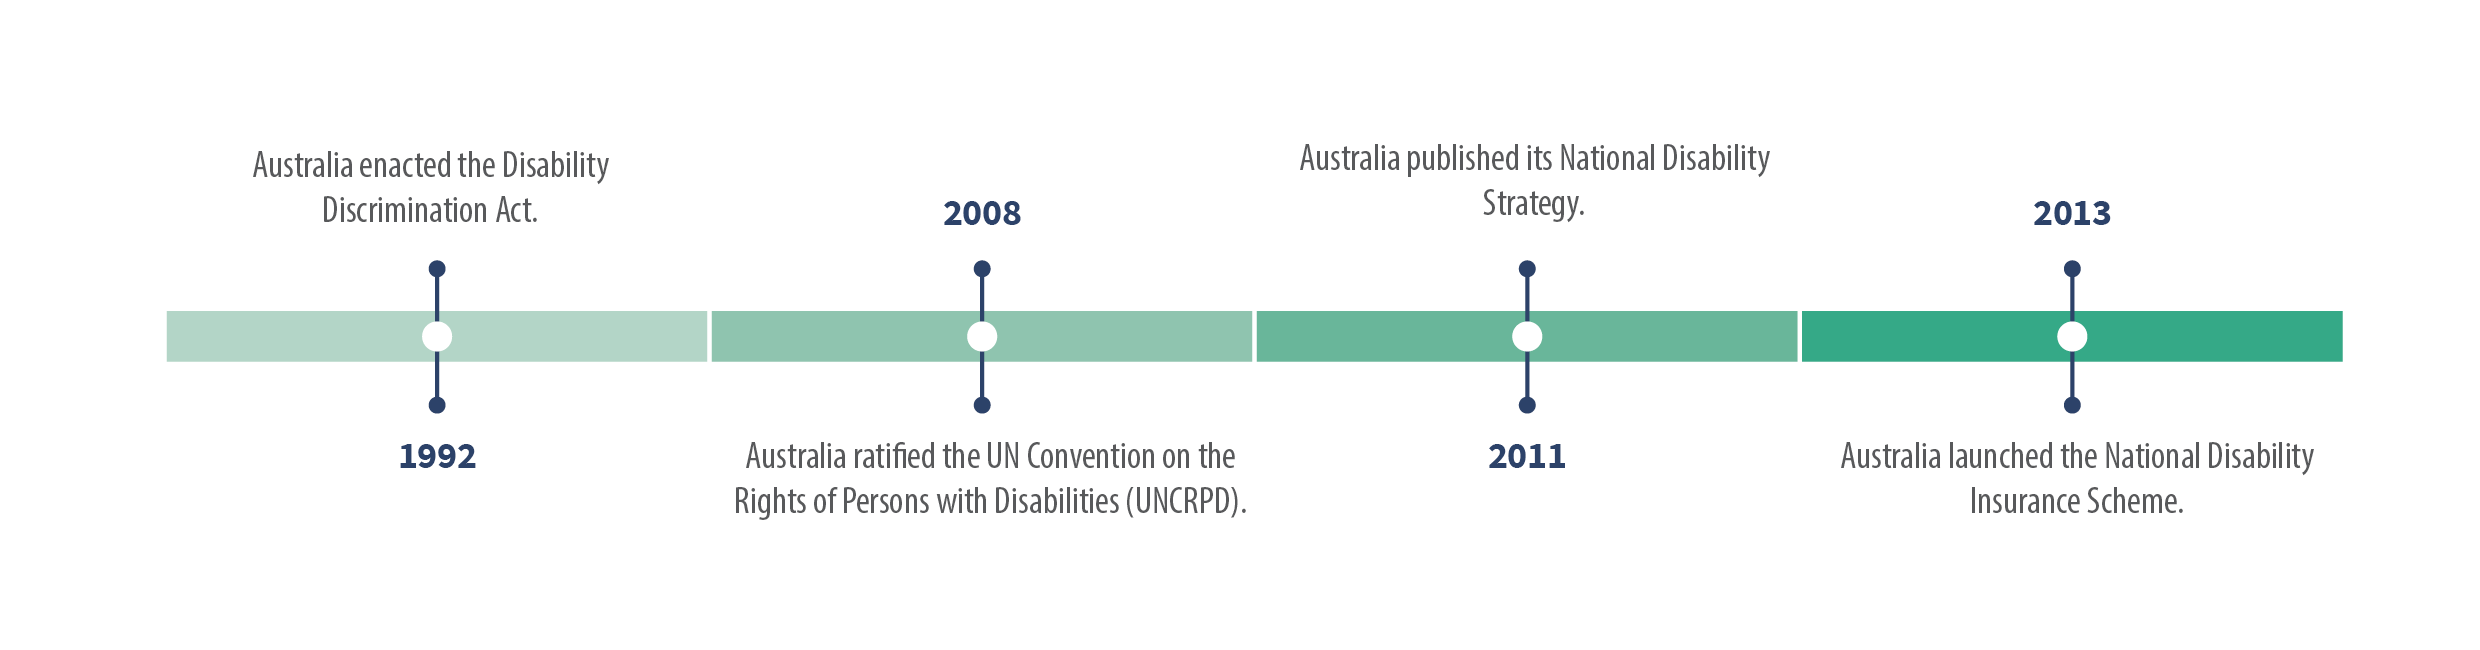 Timeline of Australia's policy and legislation for people with disabilites